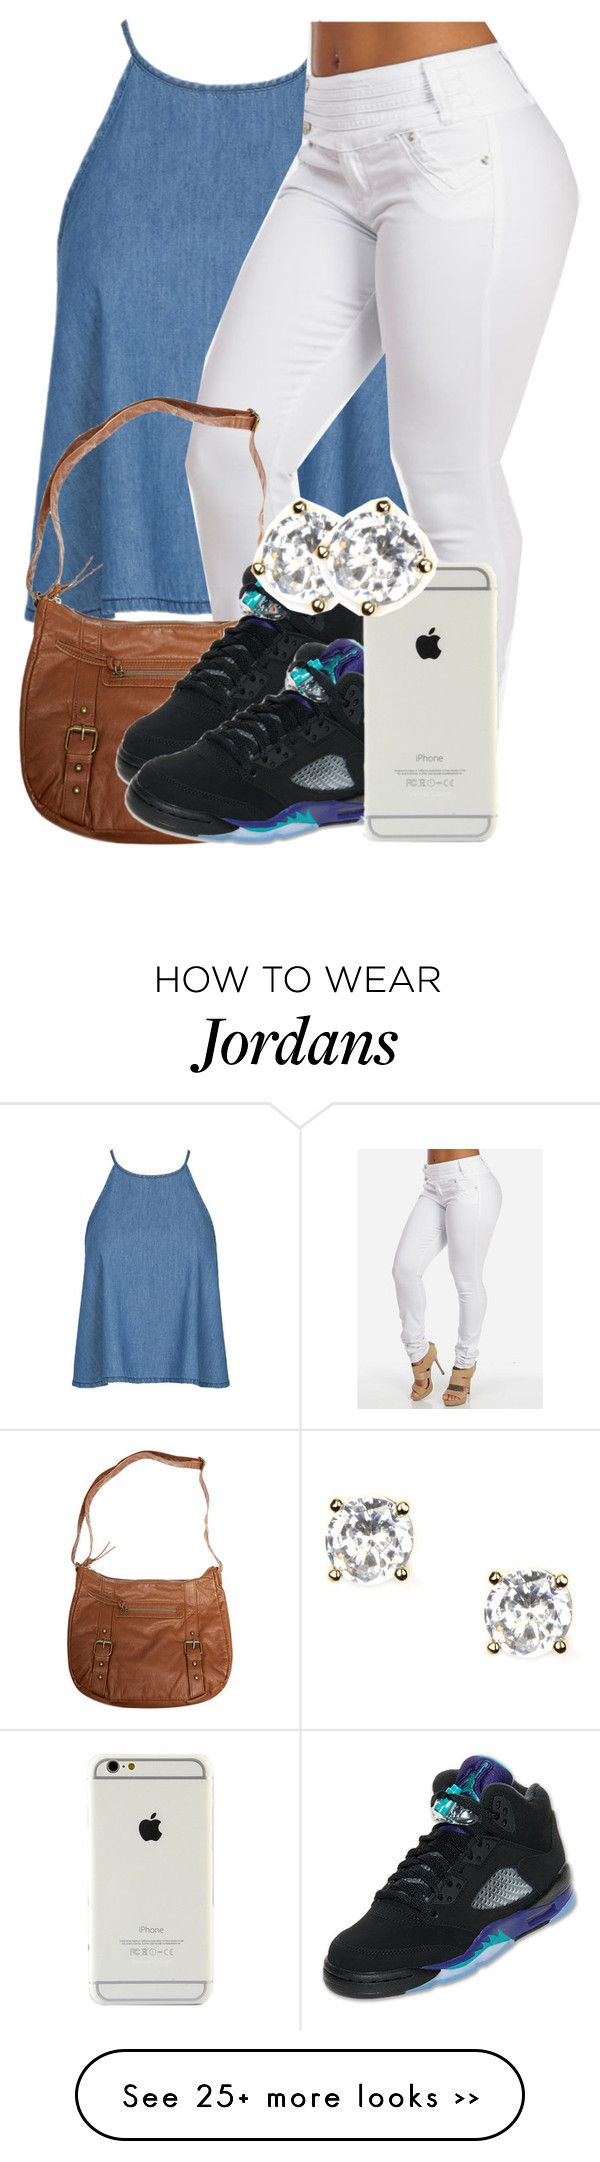 """Goodnight Yall!"" by clinne345 on Polyvore featuring Wet Seal and Givenchy"